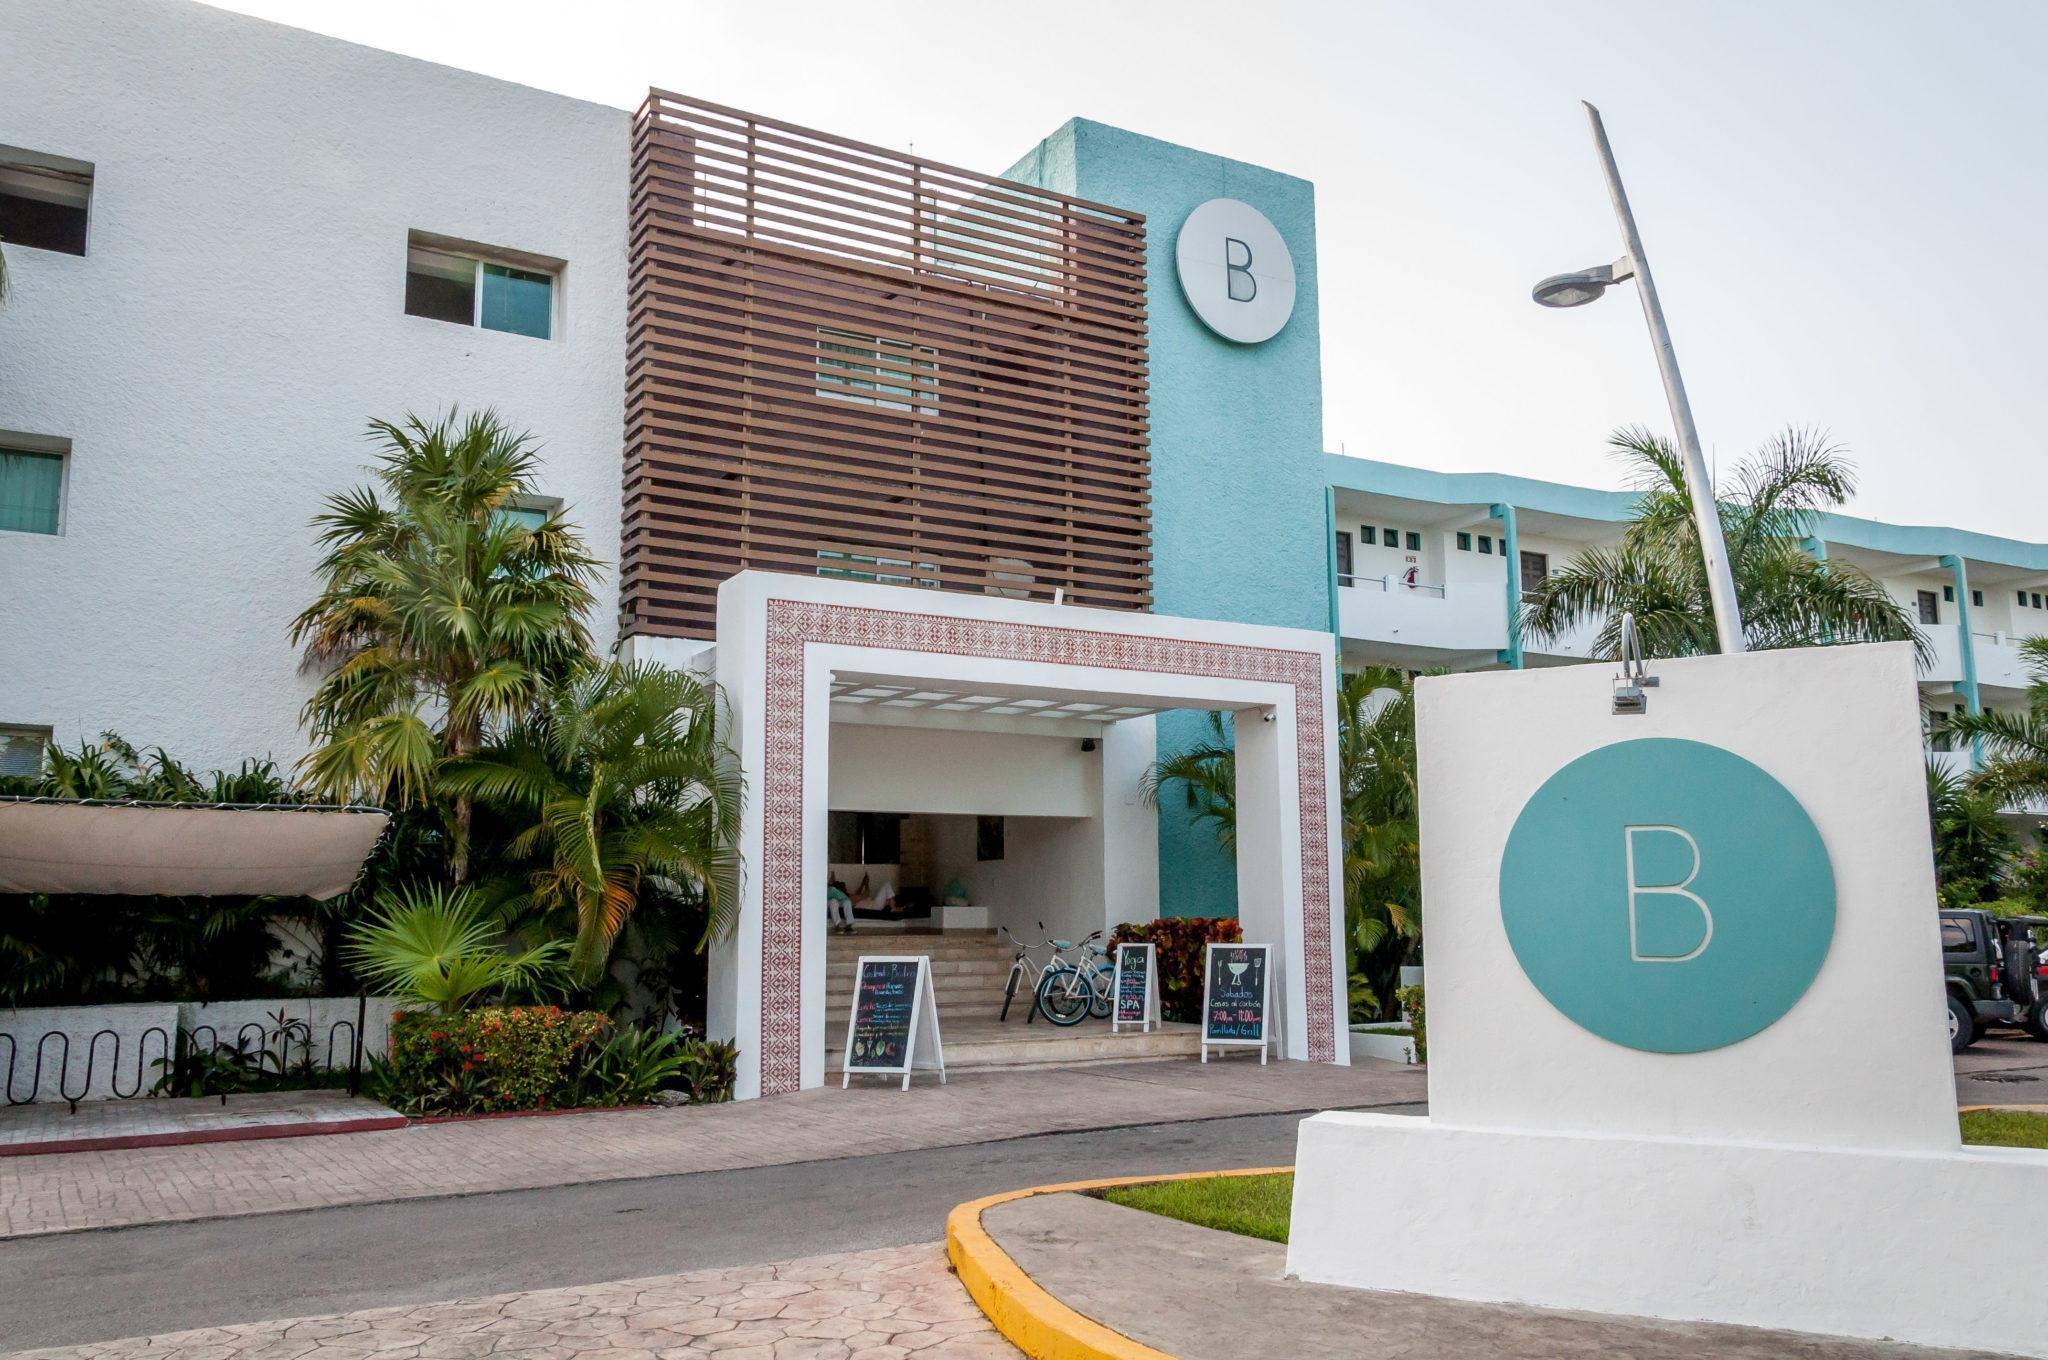 The front of the Hotel B Cozumel from the street